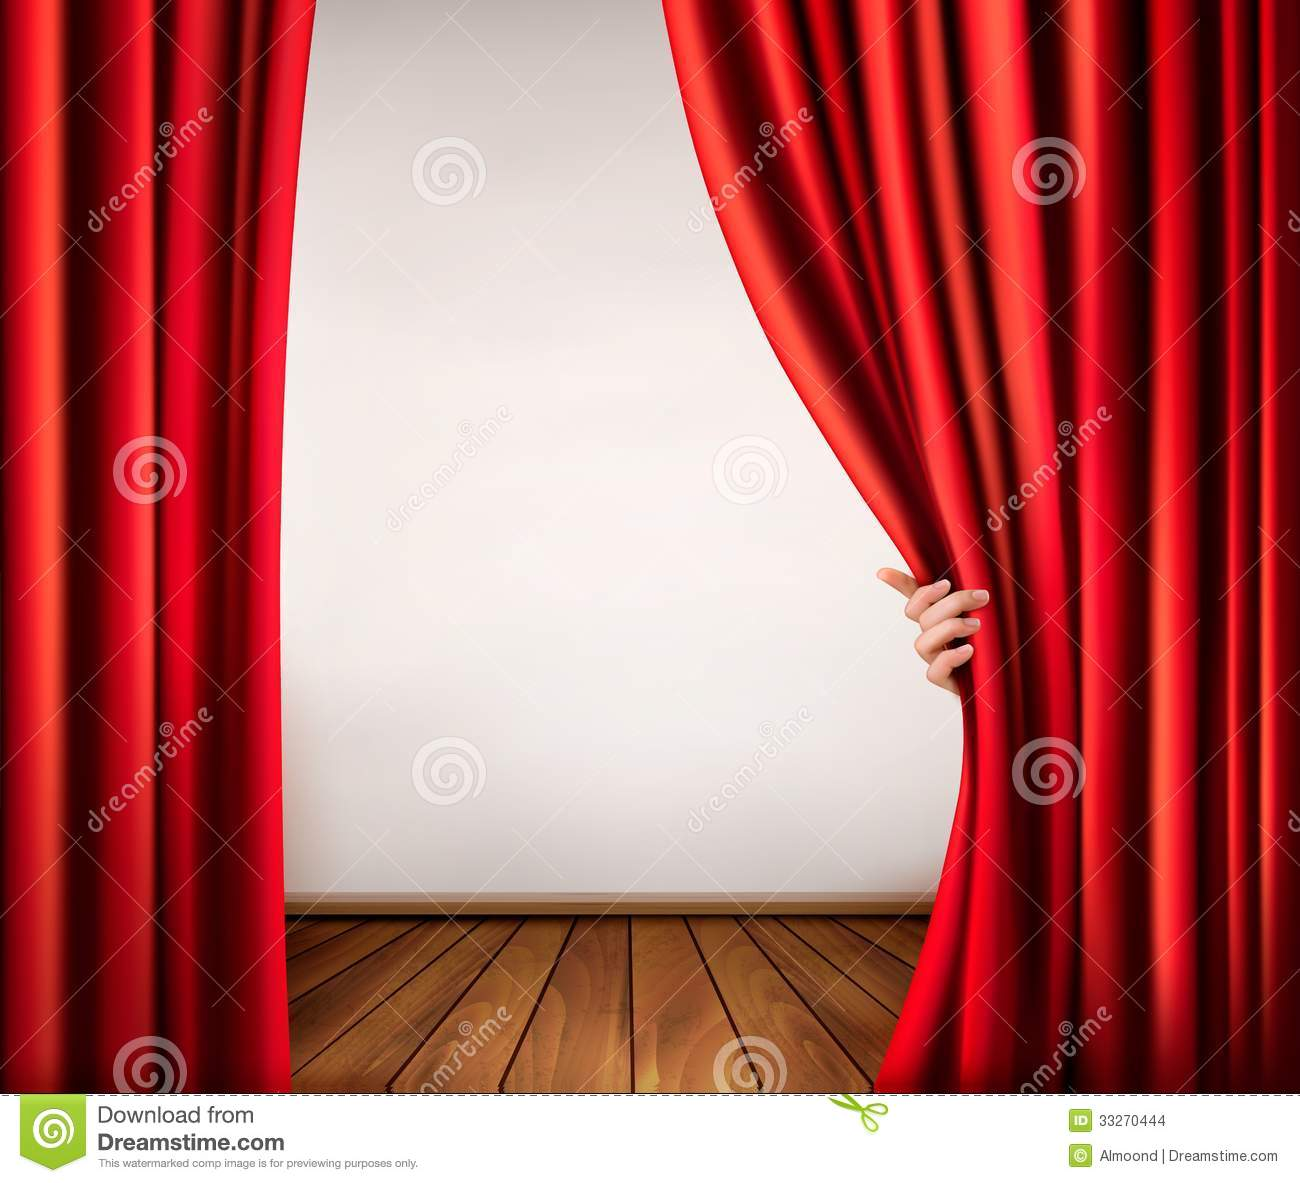 Background With Red Velvet Curtain And Hand Stock Images Image 33270444